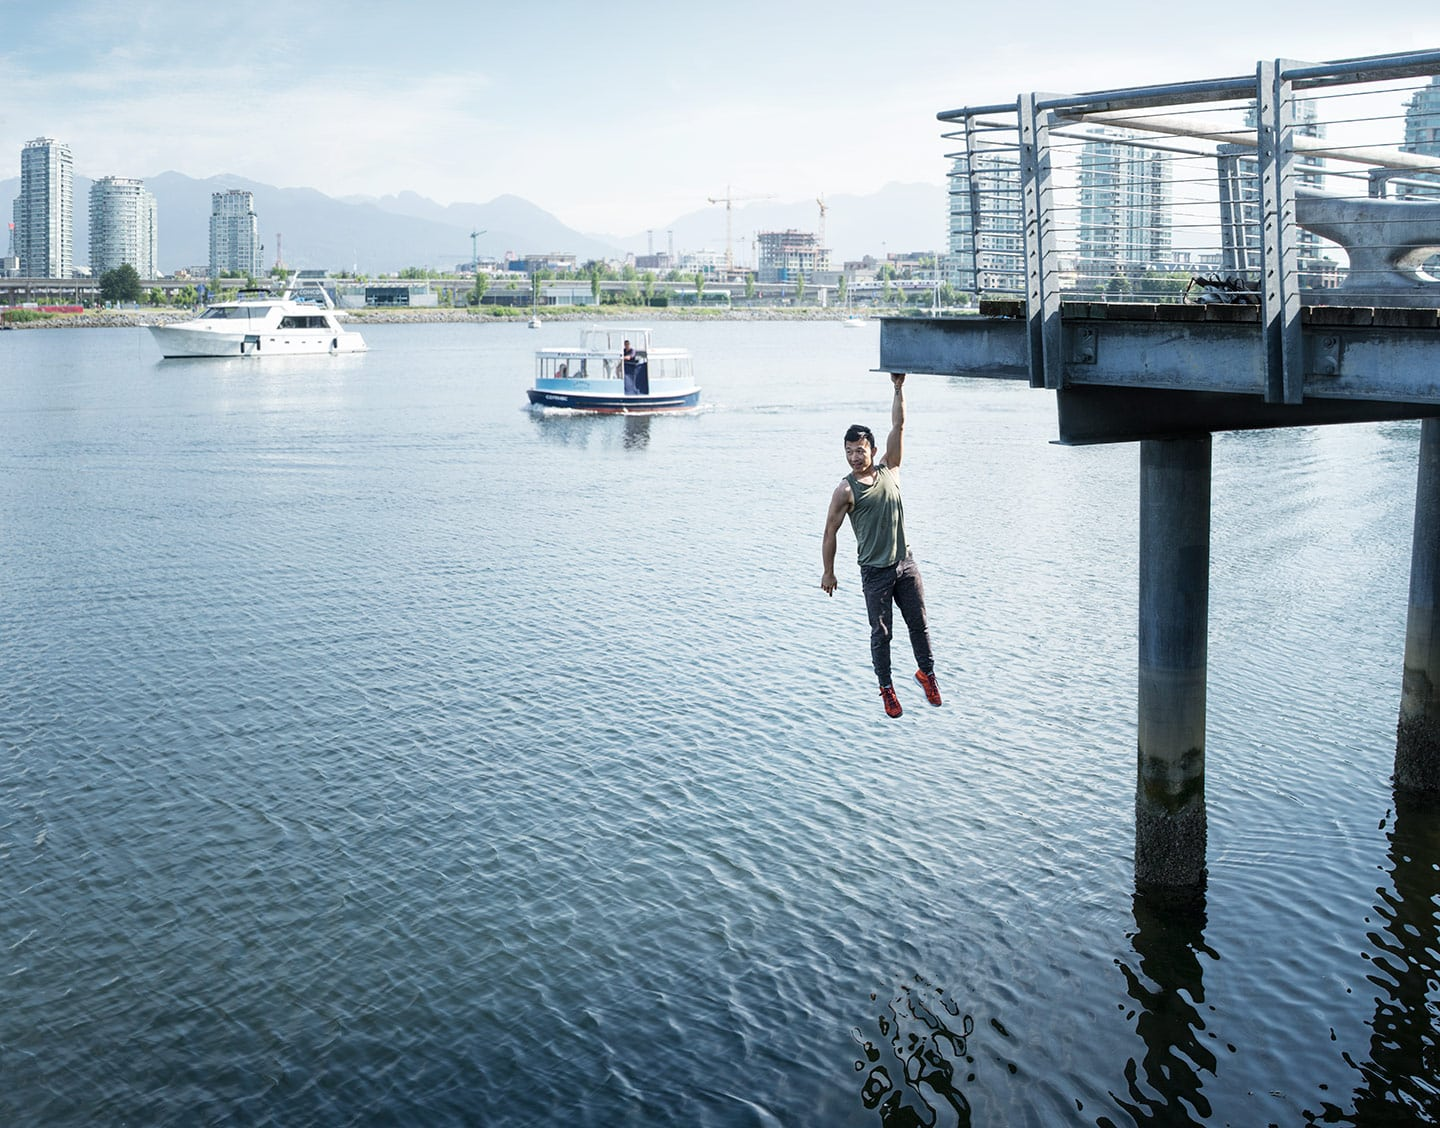 Parkour Athlete Hanging Over Blue Water Front Image City Skyline